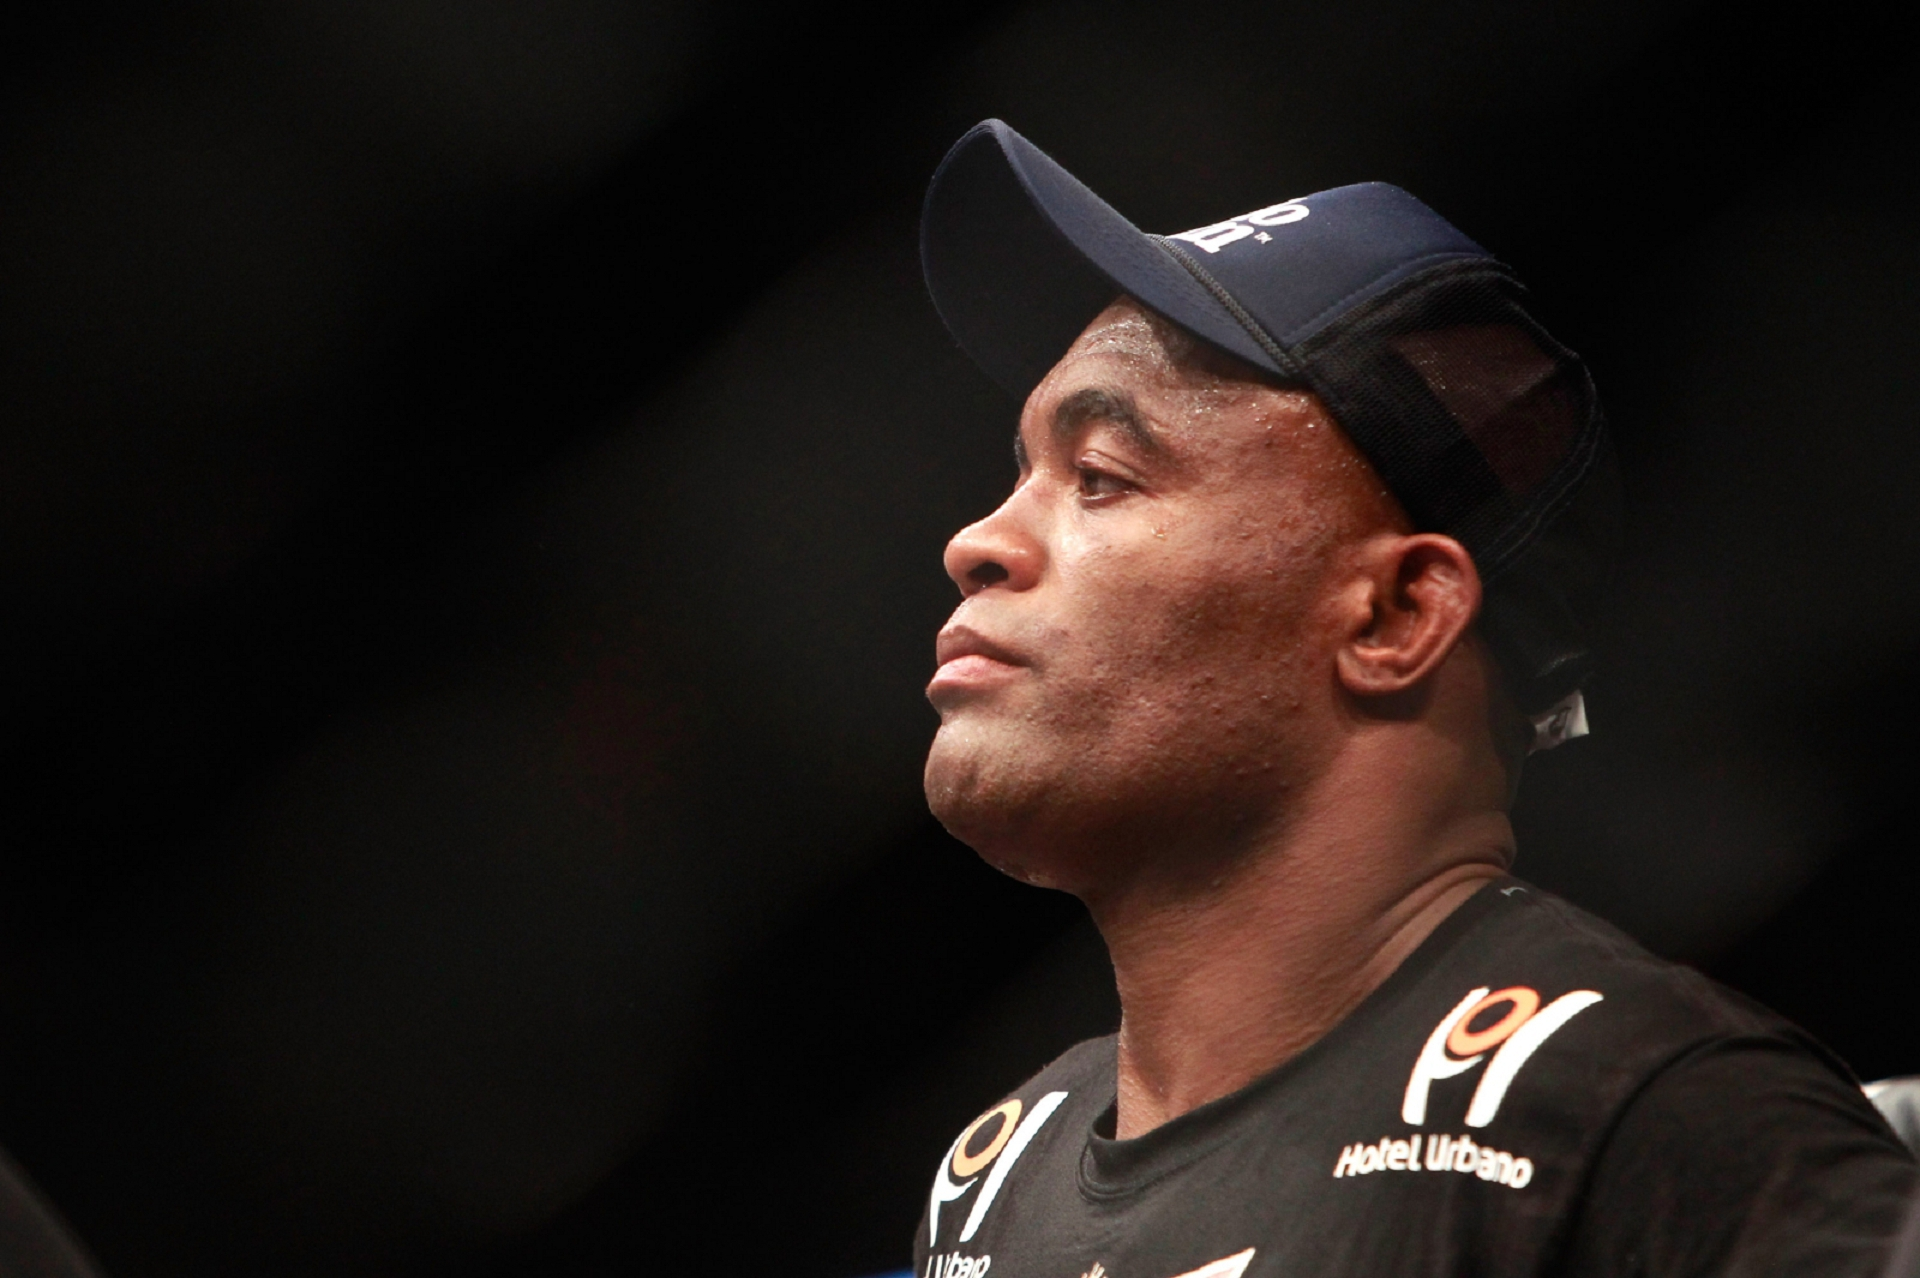 images about The One and Only Anderson Silva on Pinterest 1920x1278